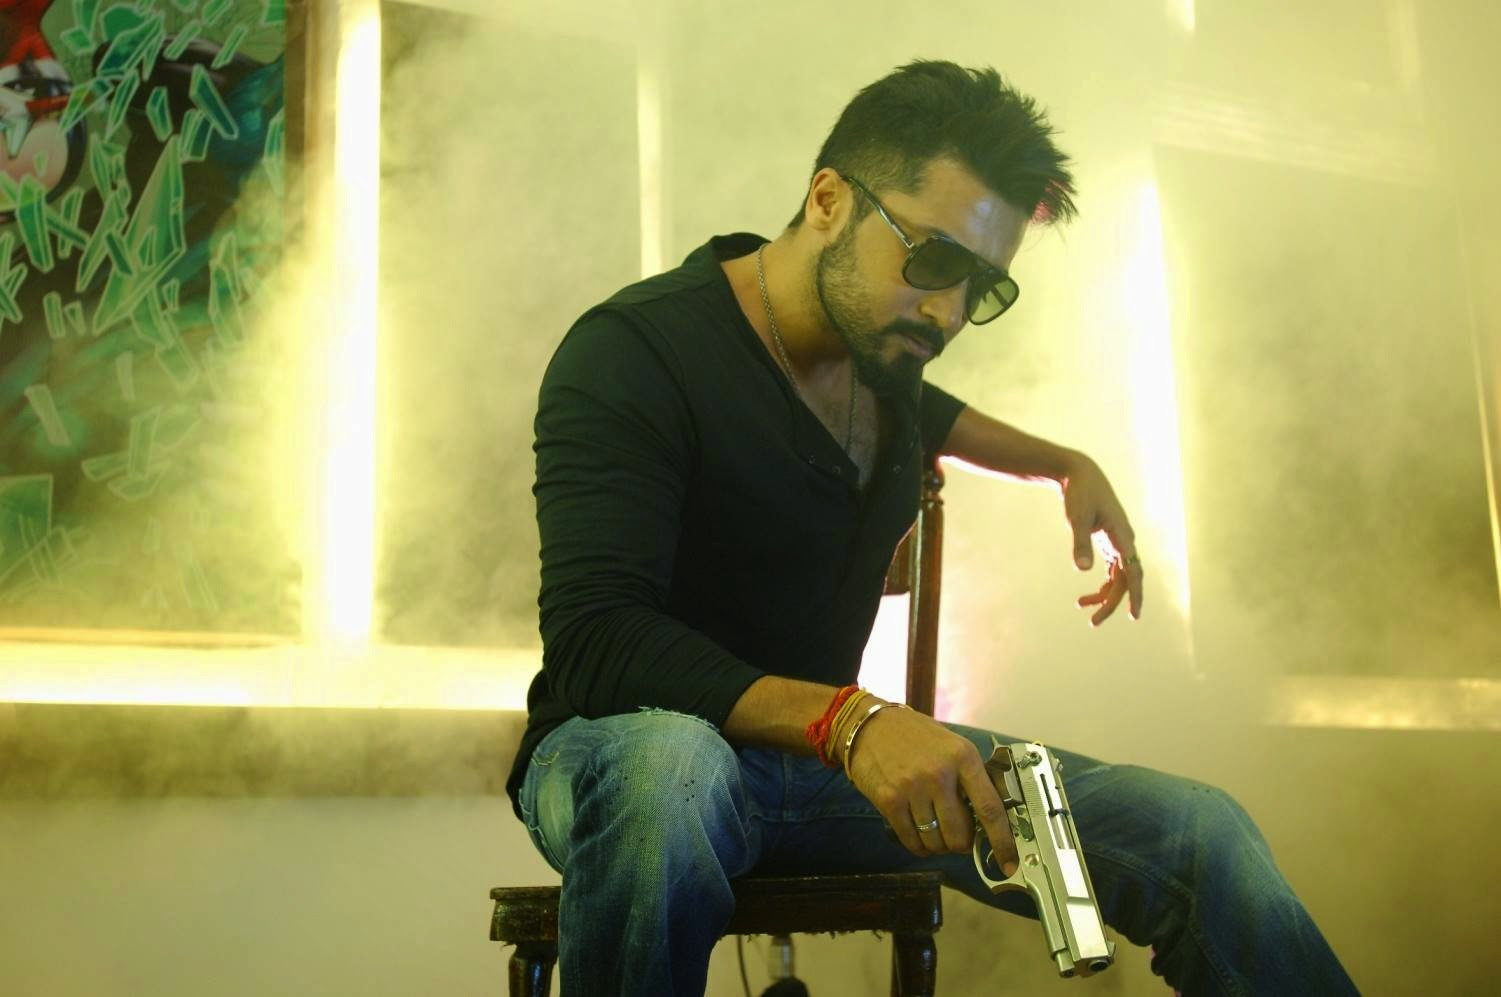 Anjaan 2014 movie firstlook images photos gallery in hd actor anjaan 2014 movie firstlook images photos gallery in hd actor surya masss movie first look trailers teaser songs posters stills thecheapjerseys Images